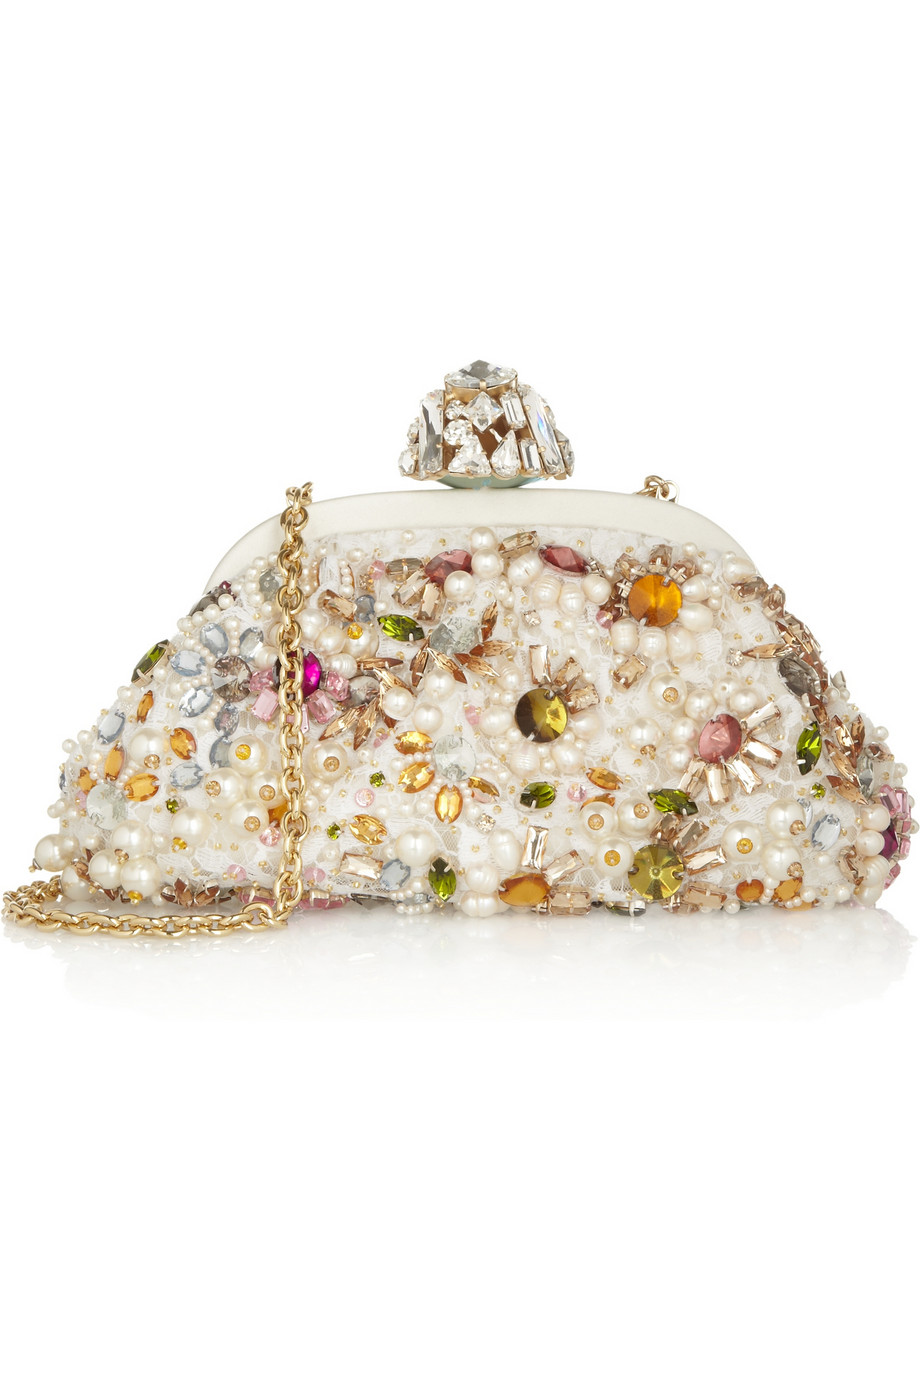 Lyst - Dolce   Gabbana Miss Dea Small Embellished Lace Clutch in White 00150ae332e95